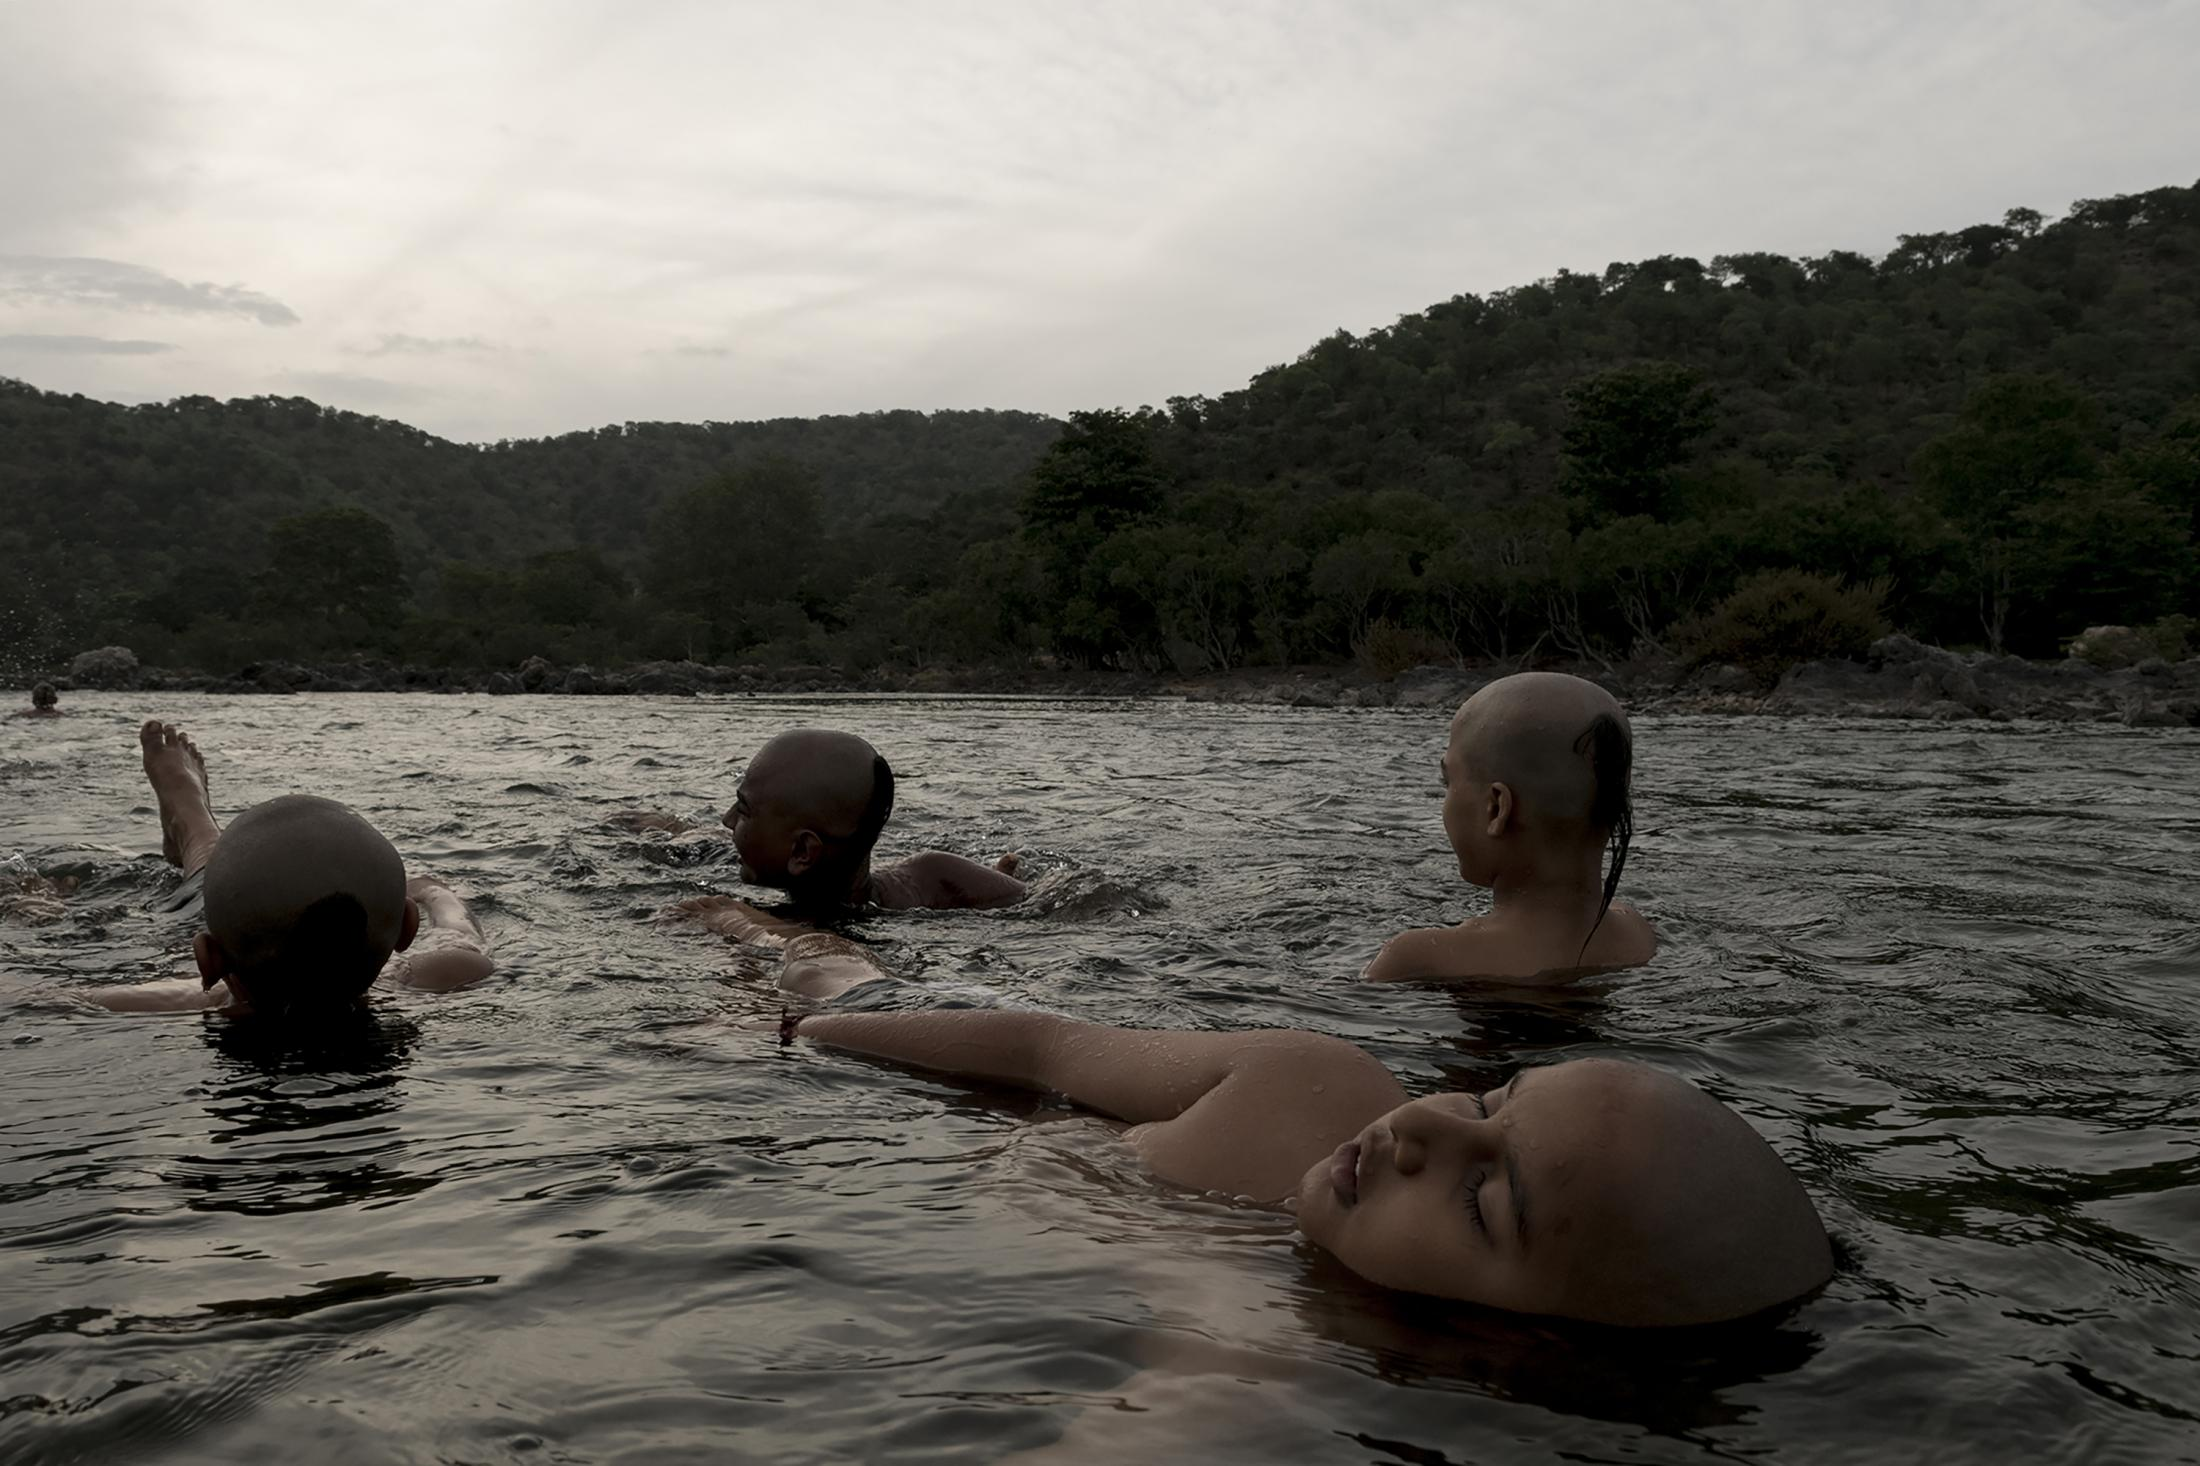 Students take river bathe during Brahma muhurta. This is an auspicious period of 48 minutes that begins 1 hour 36 minutes before sunrise and ends 48 minutes before the sunrise. Central channel of life energy in our body remains active during this time. This is the best time for meditation as well.